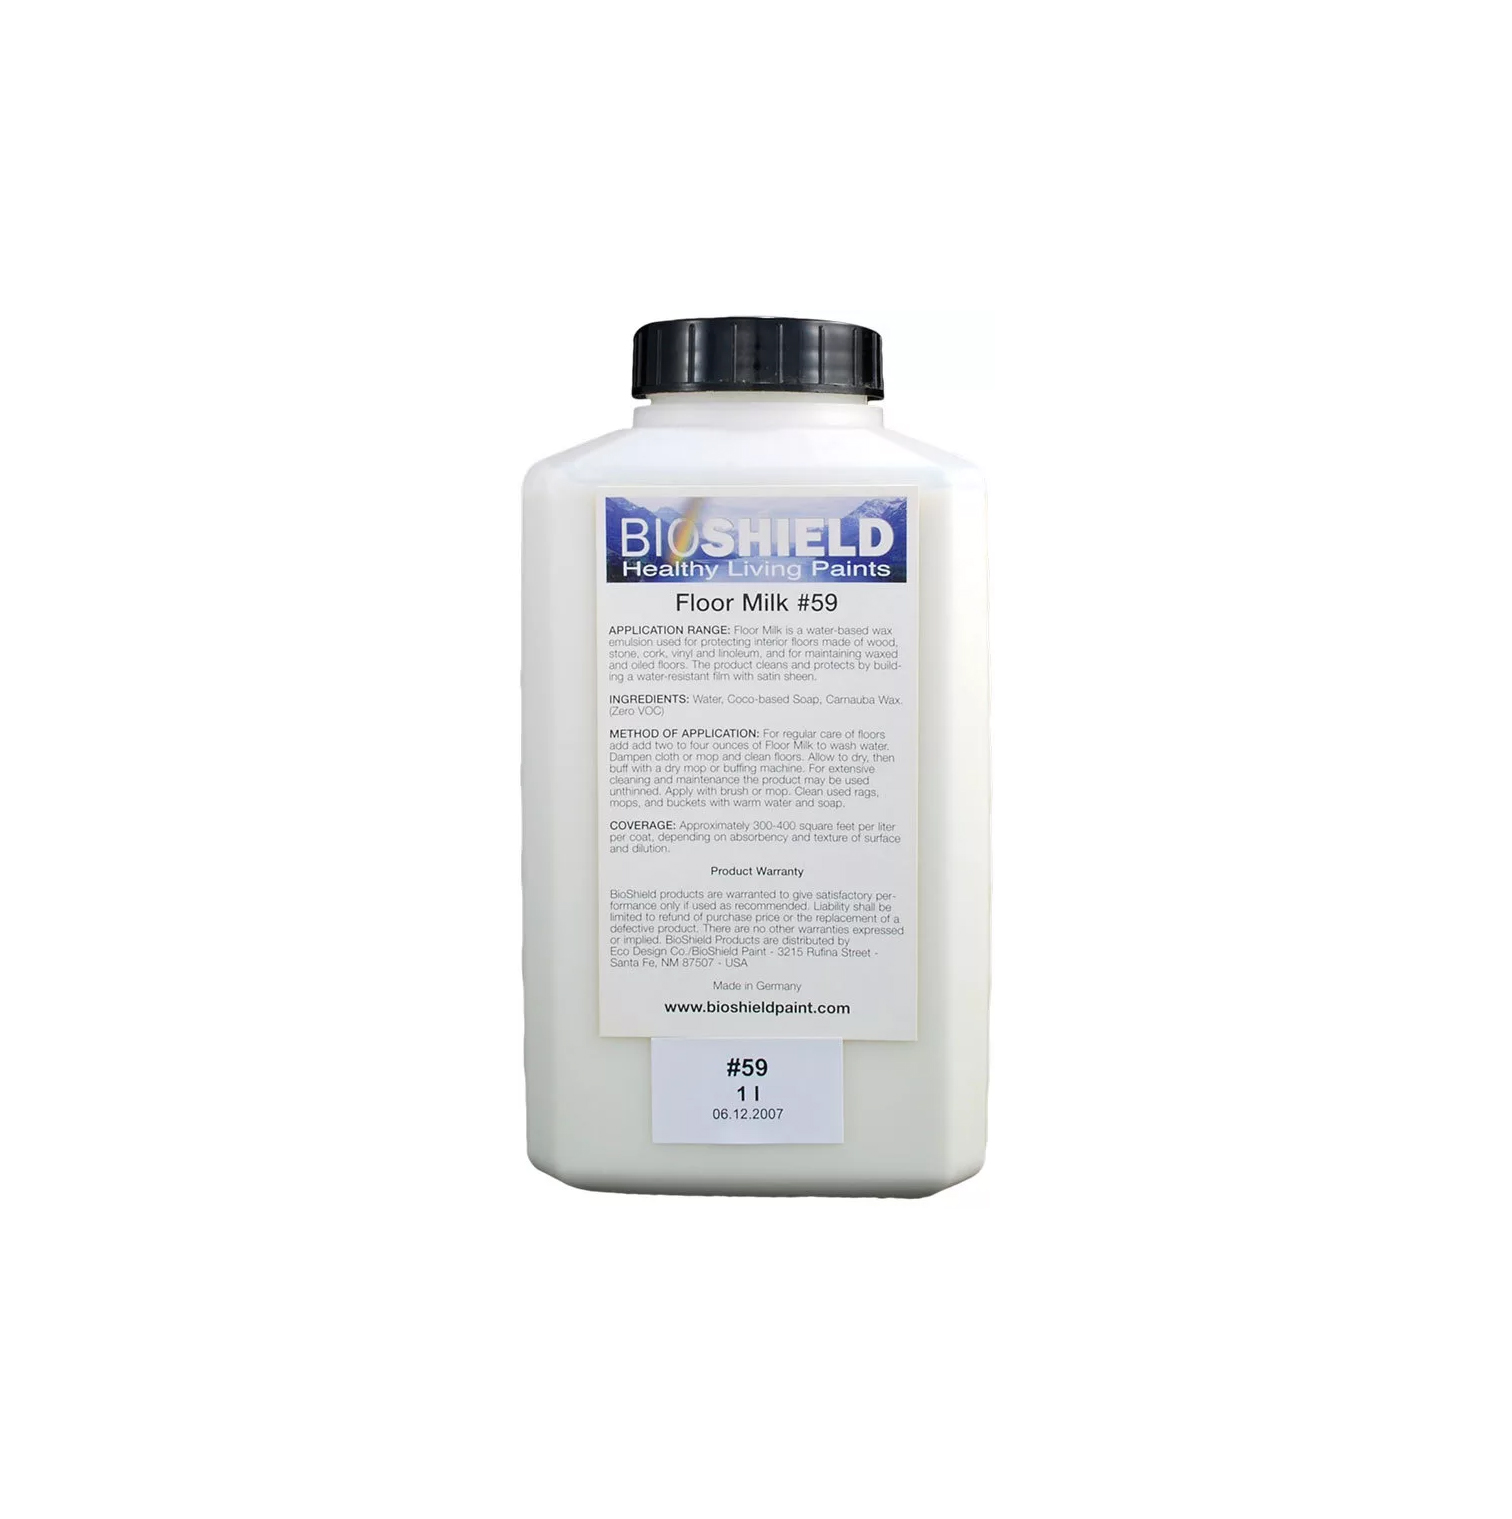 Bioshield Floor Milk